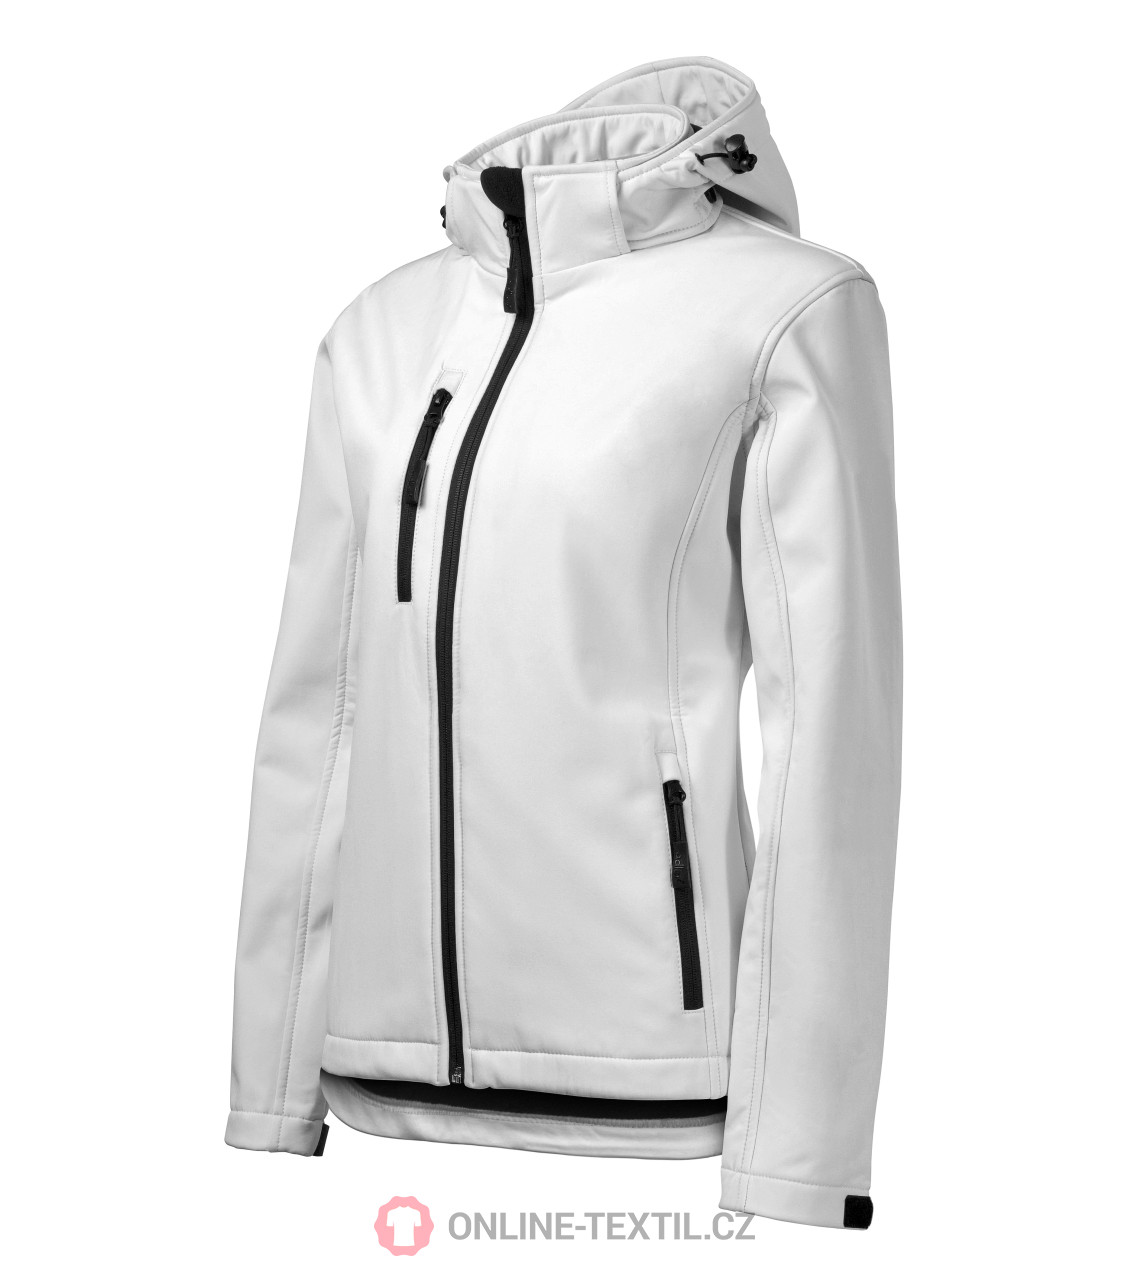 Ladies Softshell Jacket Performance with removable hood